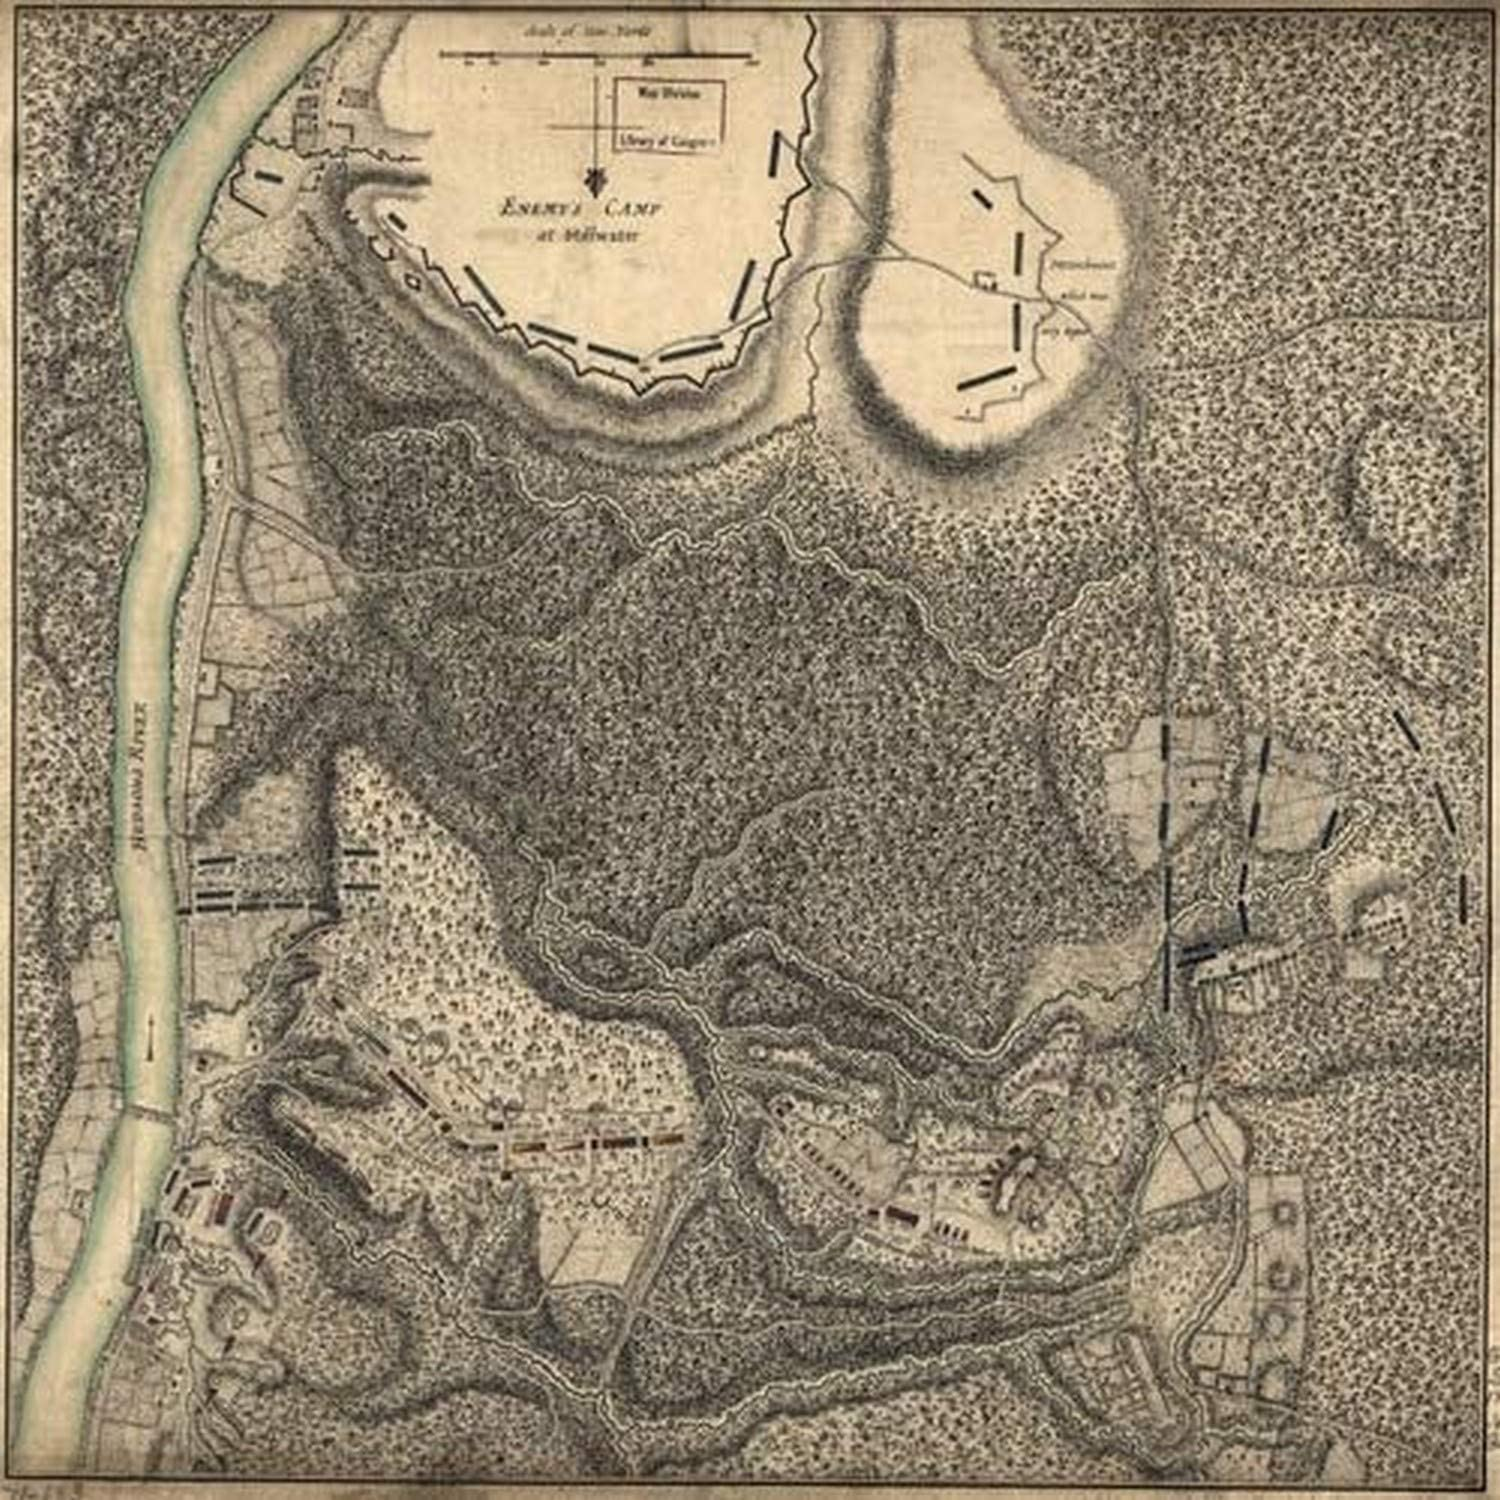 Plan of the encampment and position of the army under His Excellency Lt General Burgoyne at Bemus Heights on Hudsons River near Stillwater on the 20th September with the position of the detachment in